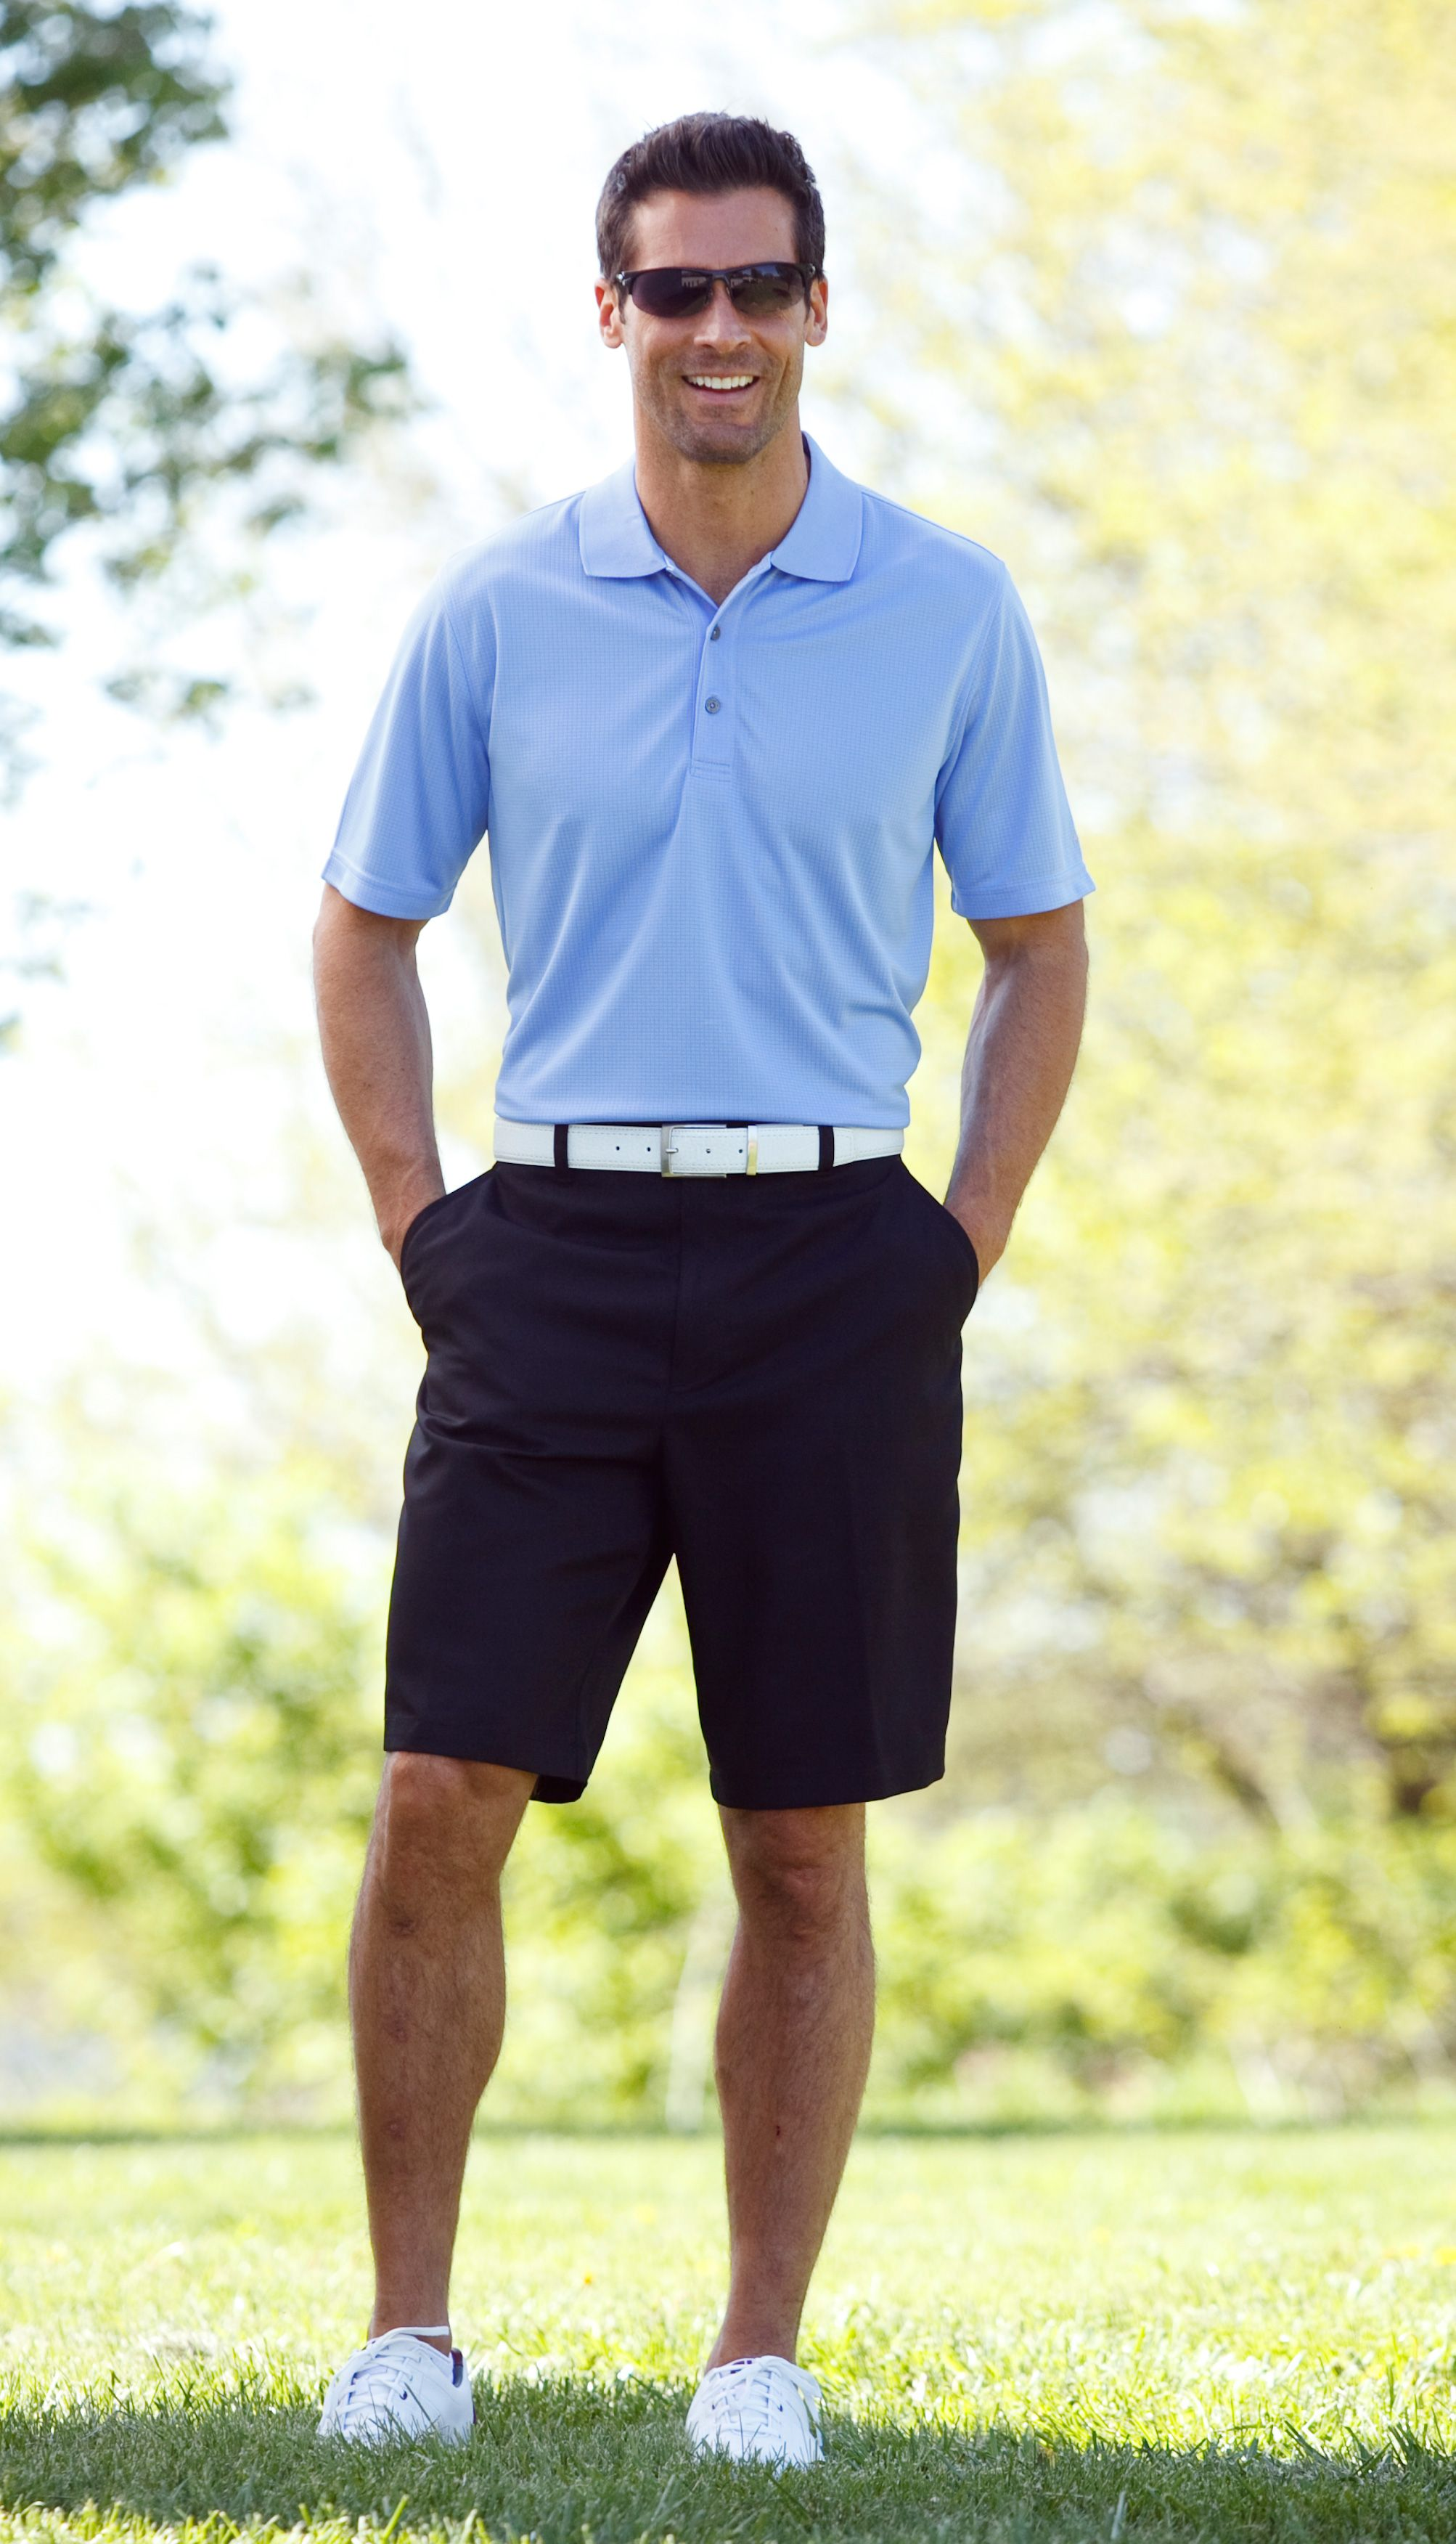 The Ideal Golf Outfit For Men